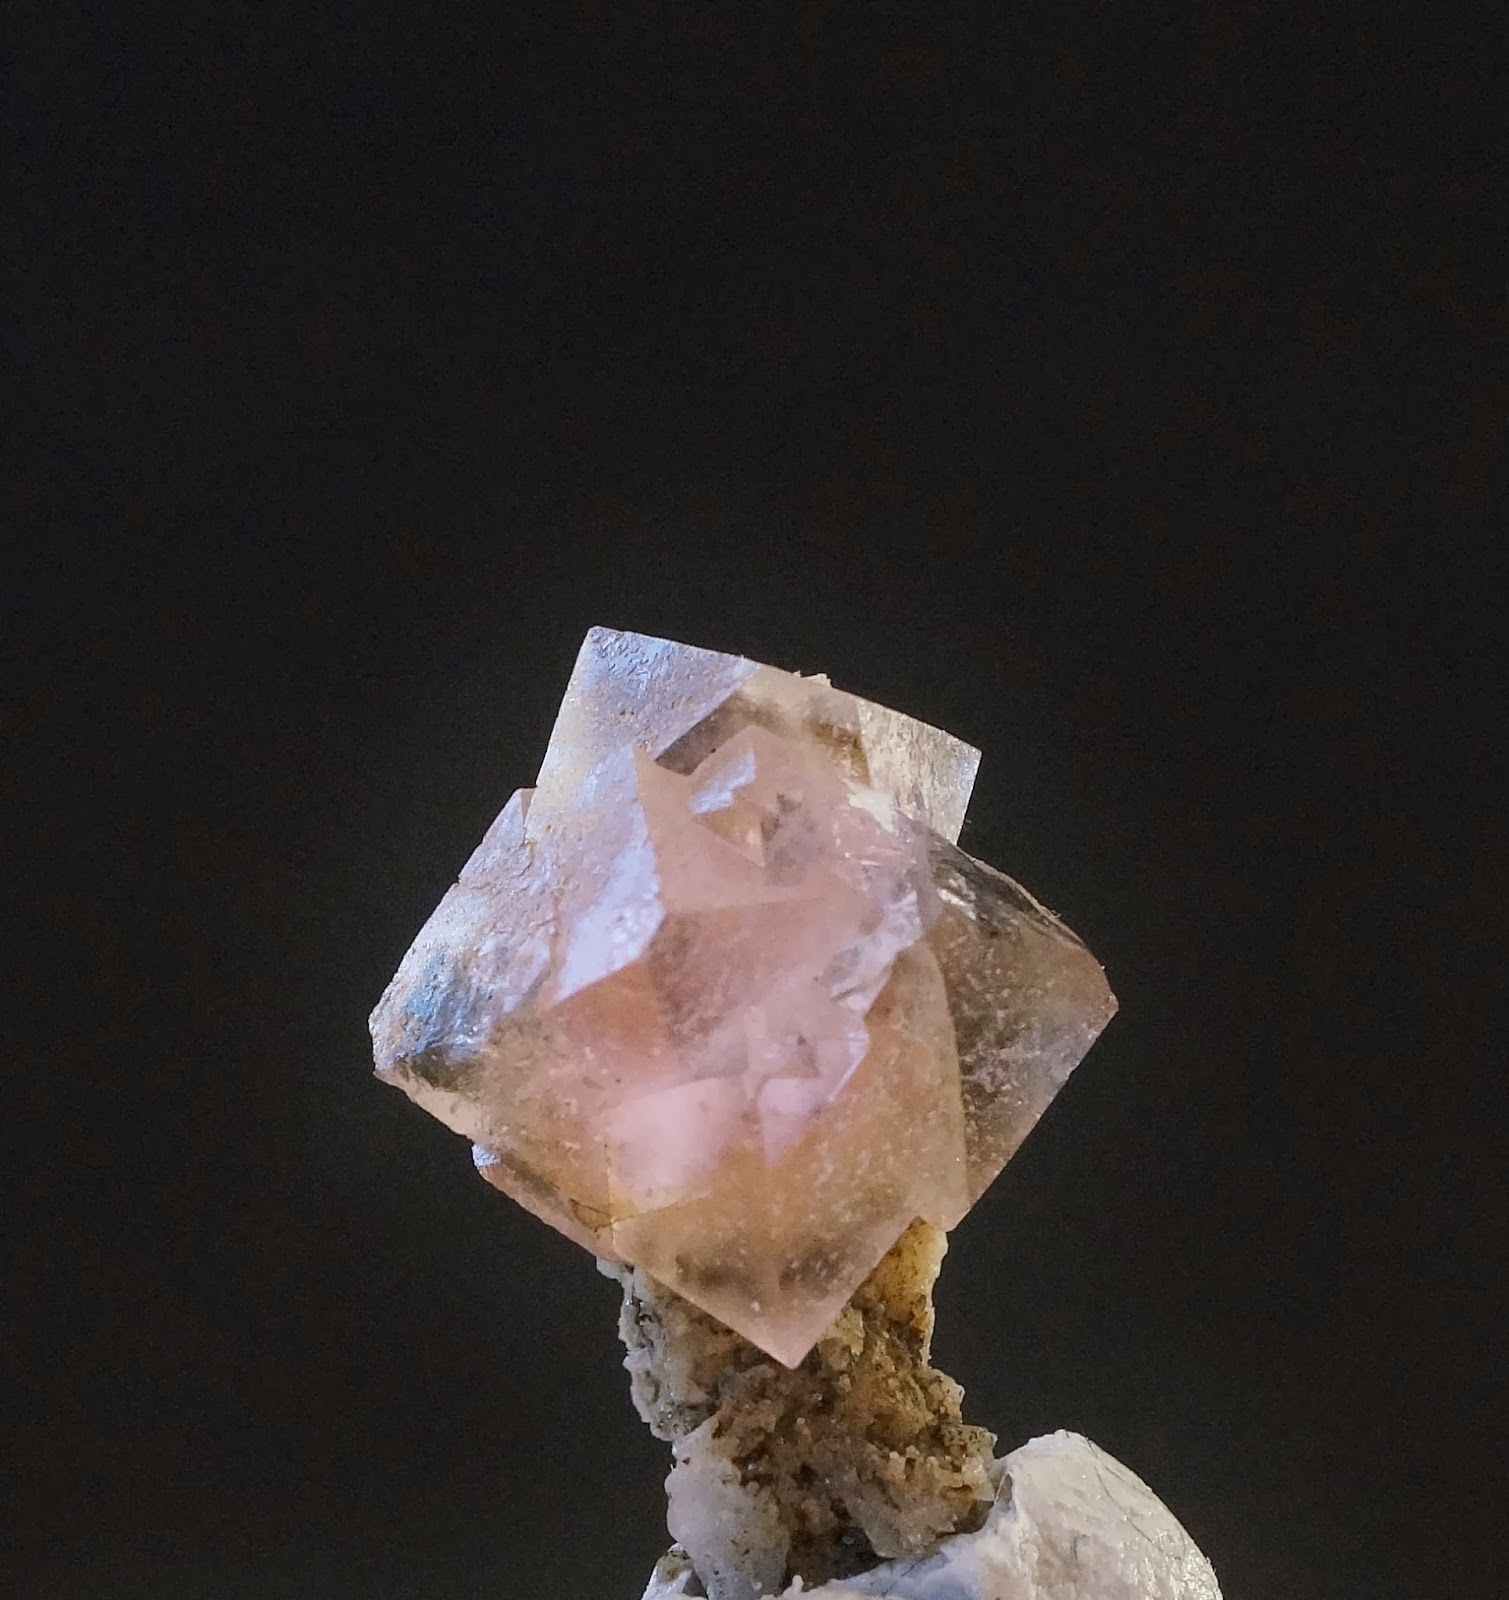 fluorite rose du Mont-Blanc, collection Dufrêne